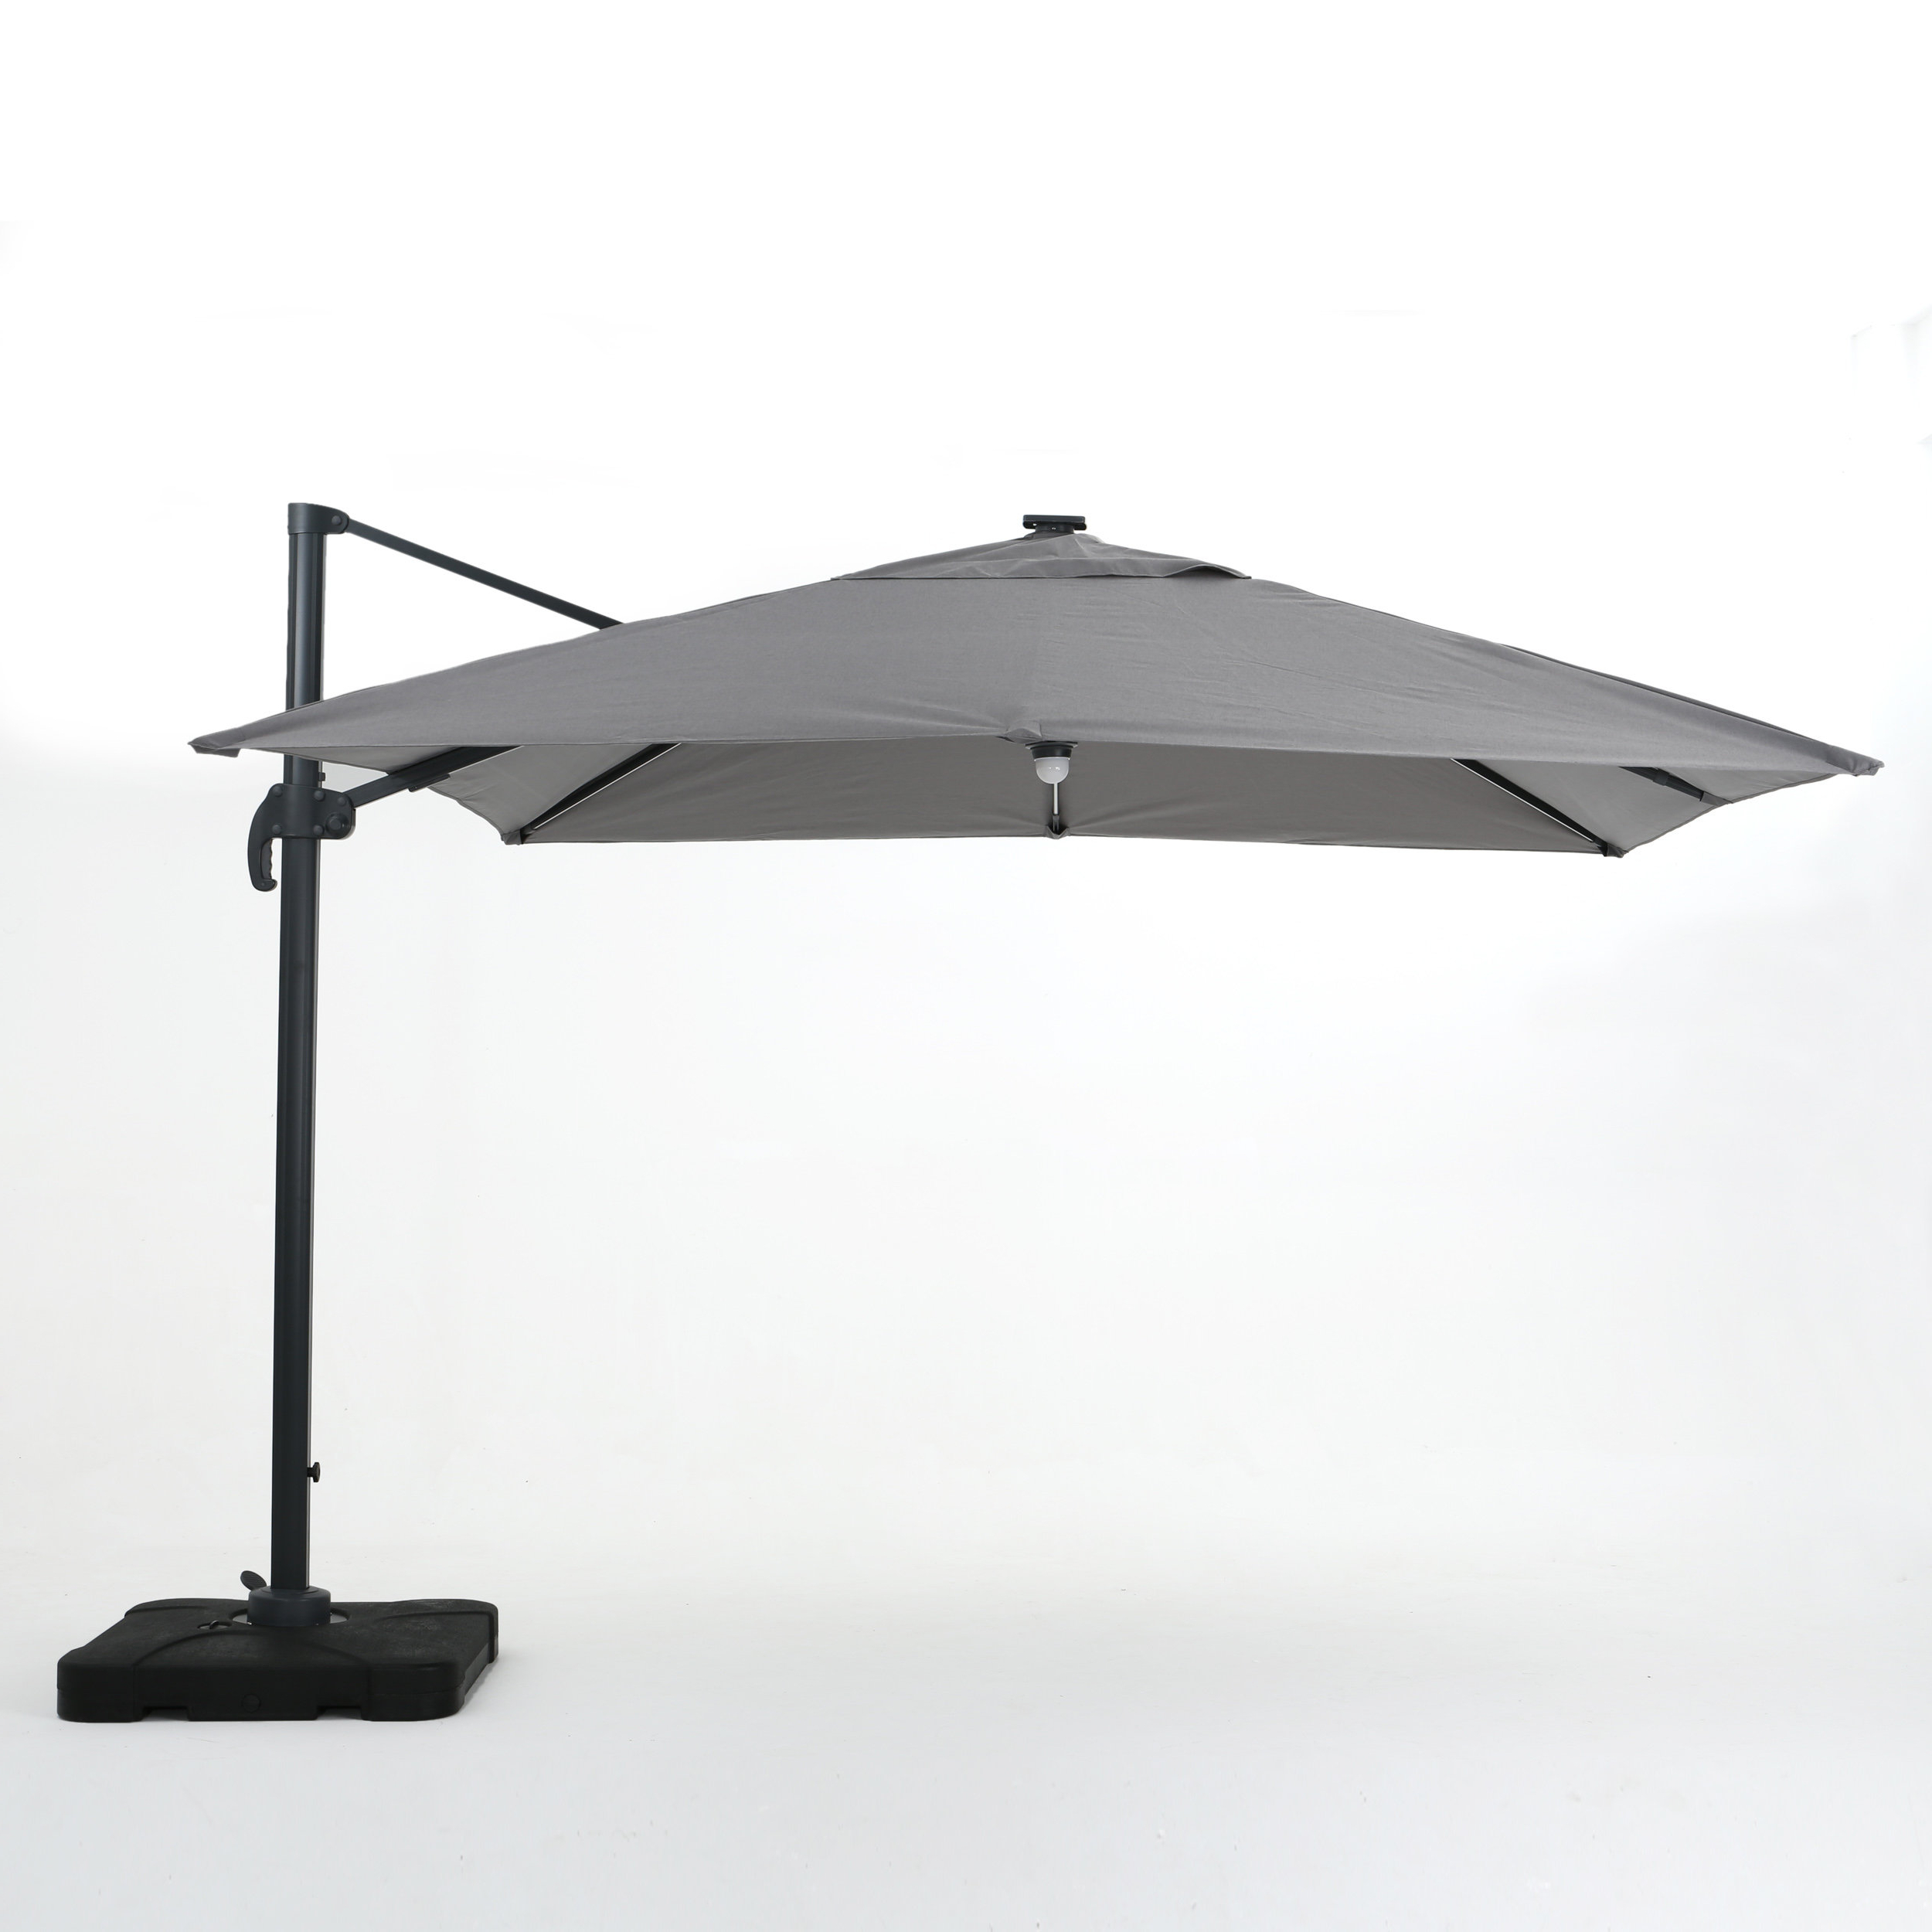 Carlisle Cantilever Sunbrella Umbrellas Within Preferred Jendayi Square Cantilever Umbrella (View 10 of 20)